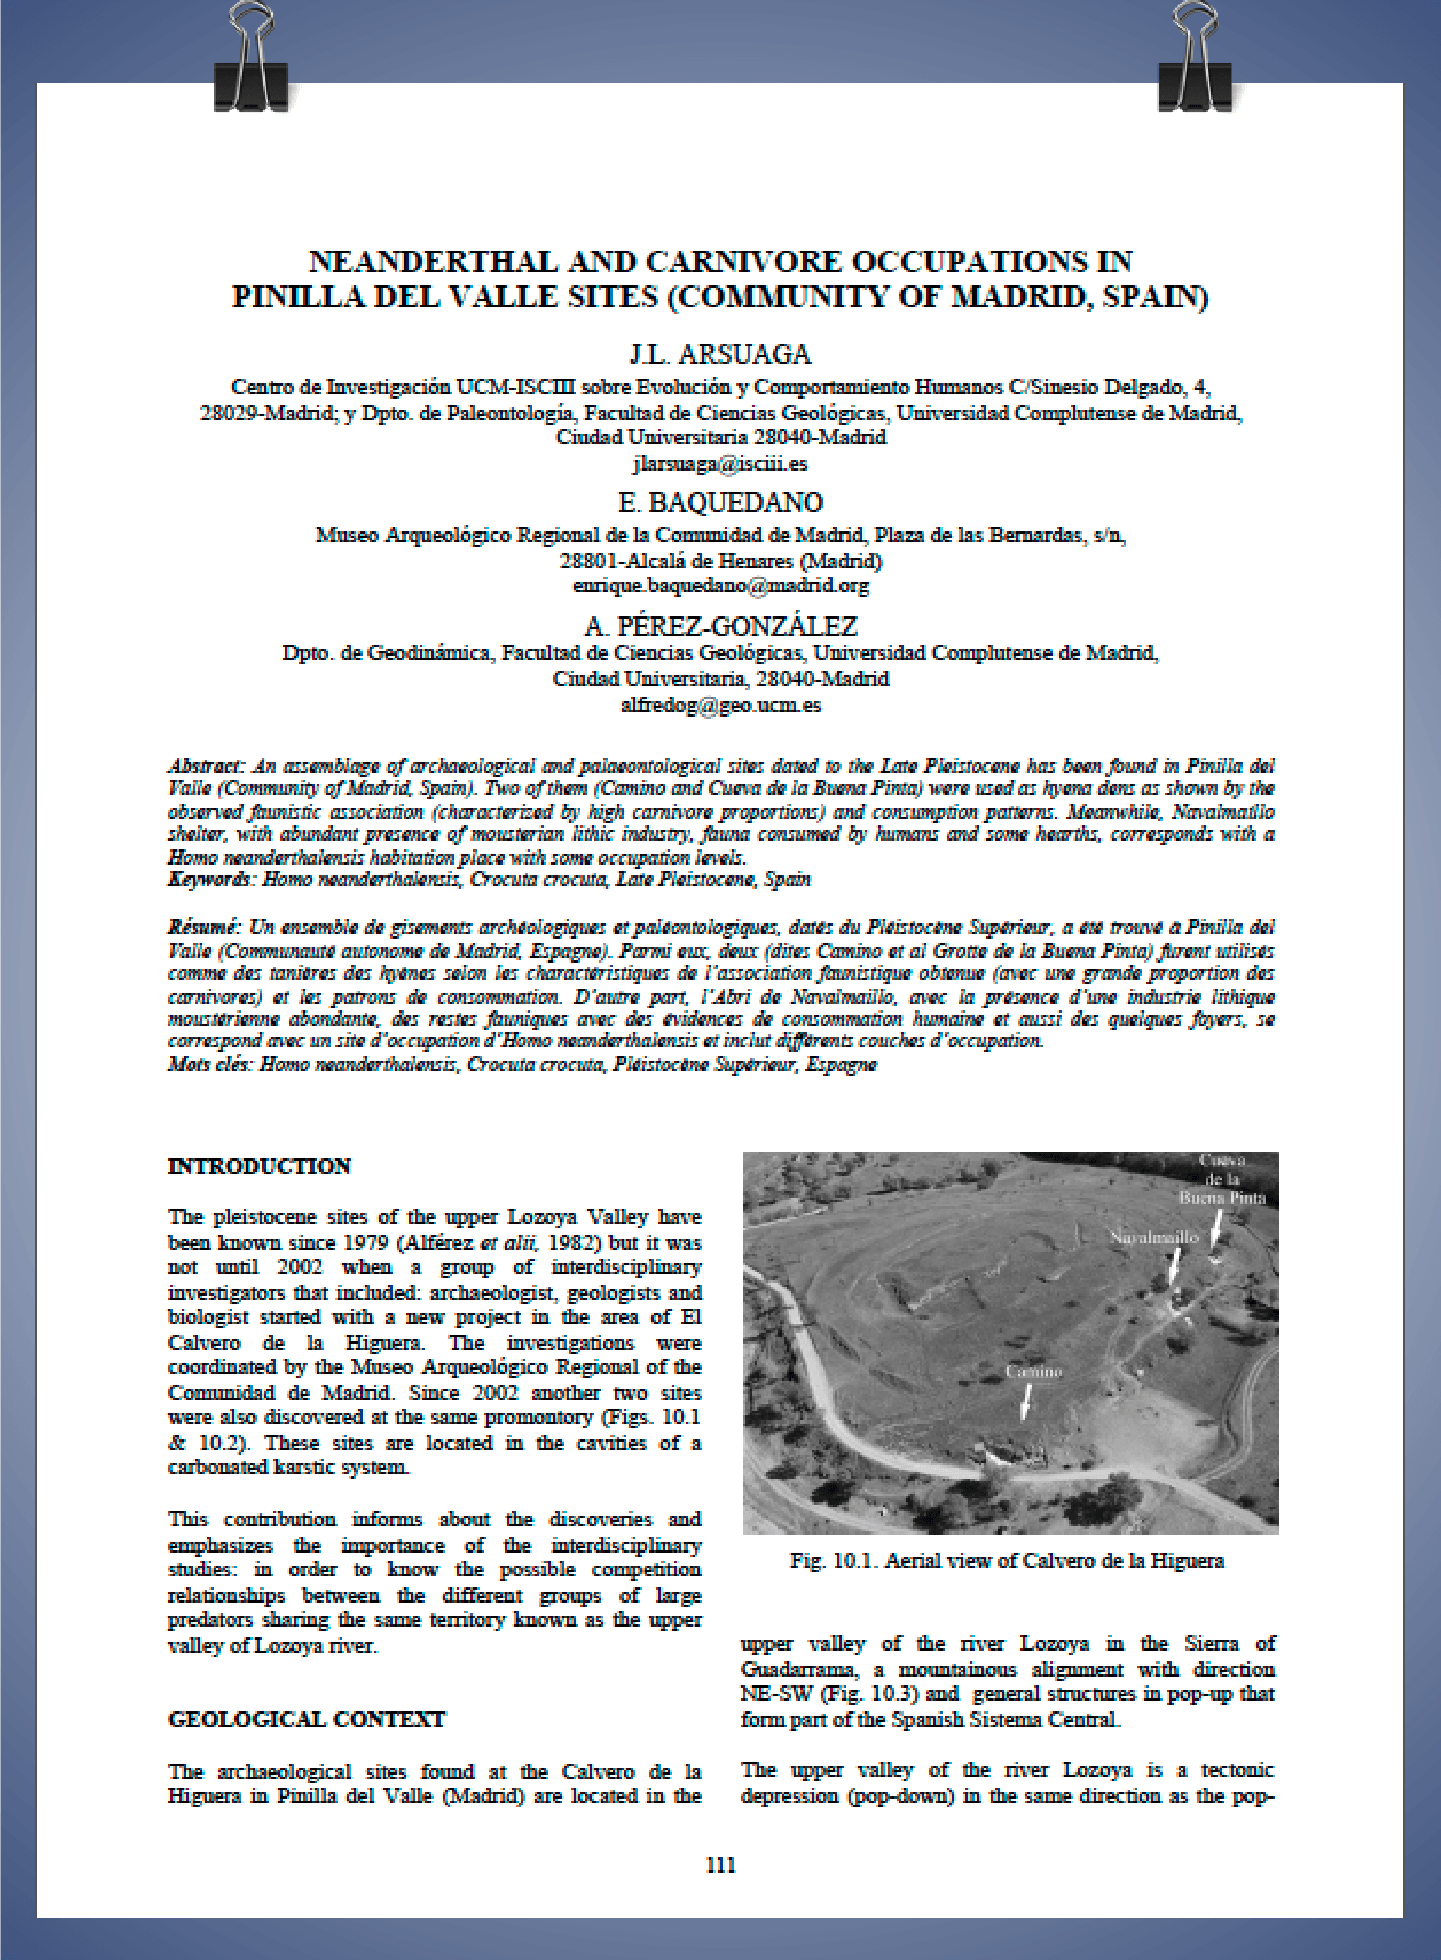 Publicación: Neanderthal and carnivore occupations in Pinilla del Valle sites (Community of Madrid, Spain). Proceedings of the XV World Congress of the International Union for Prehistoric and Protohistoric Sciences. BAR International Series, 2224: 111-119.